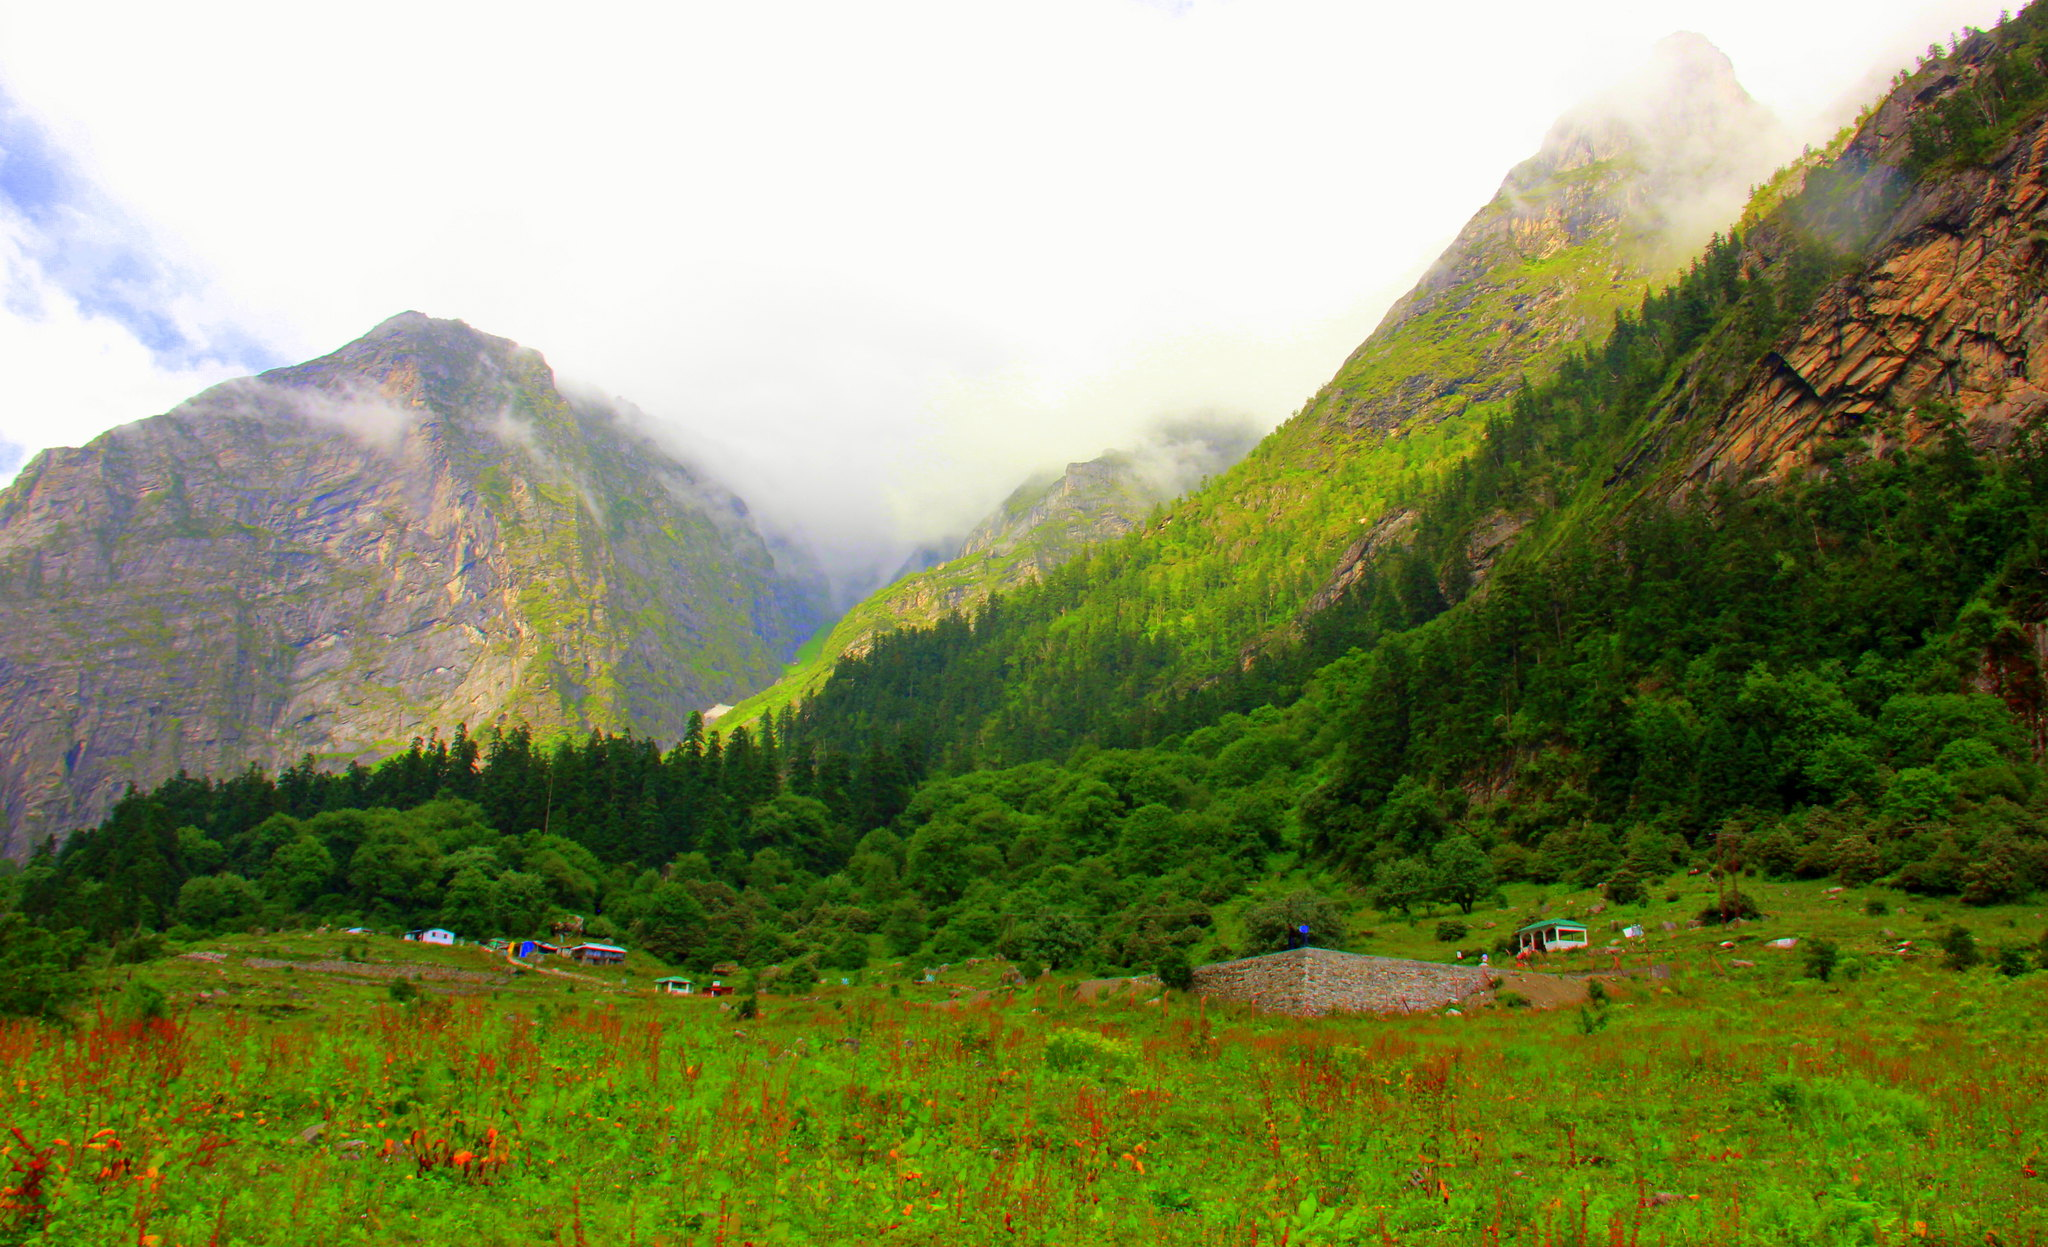 One can see many valleys and glaciers in the valley of flowers trek